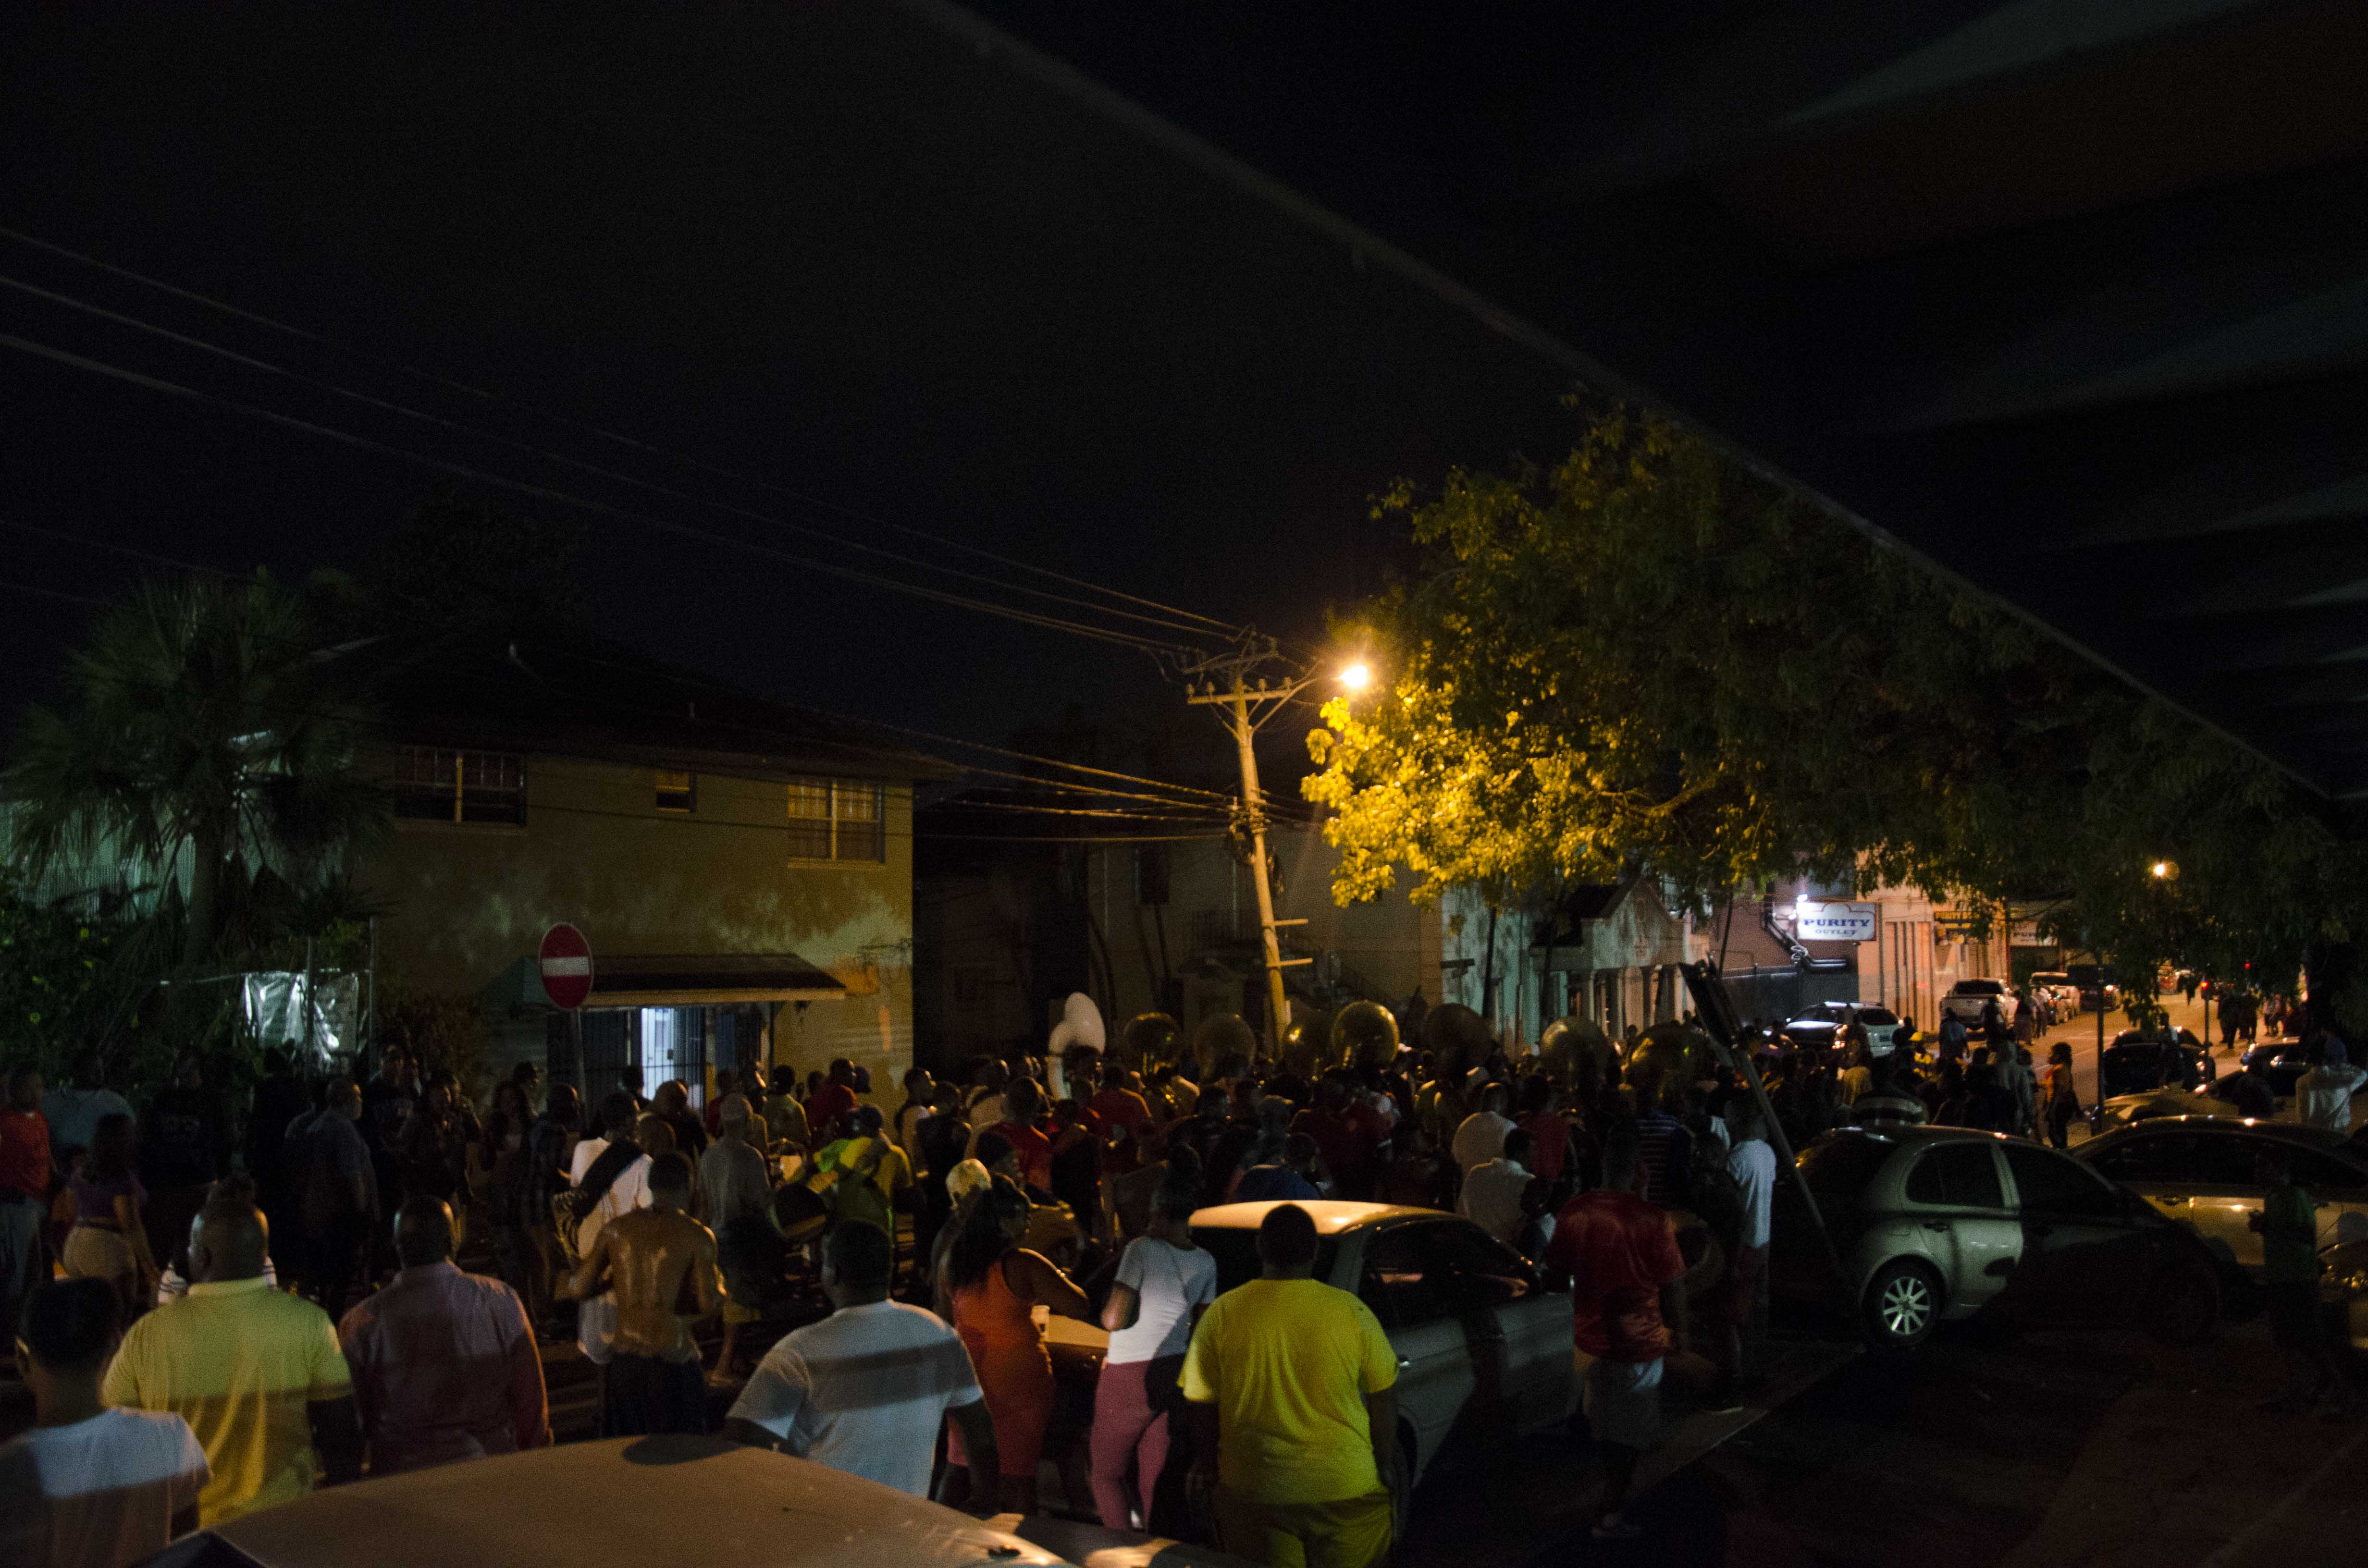 One Family Junkanoo practice crowd in the road